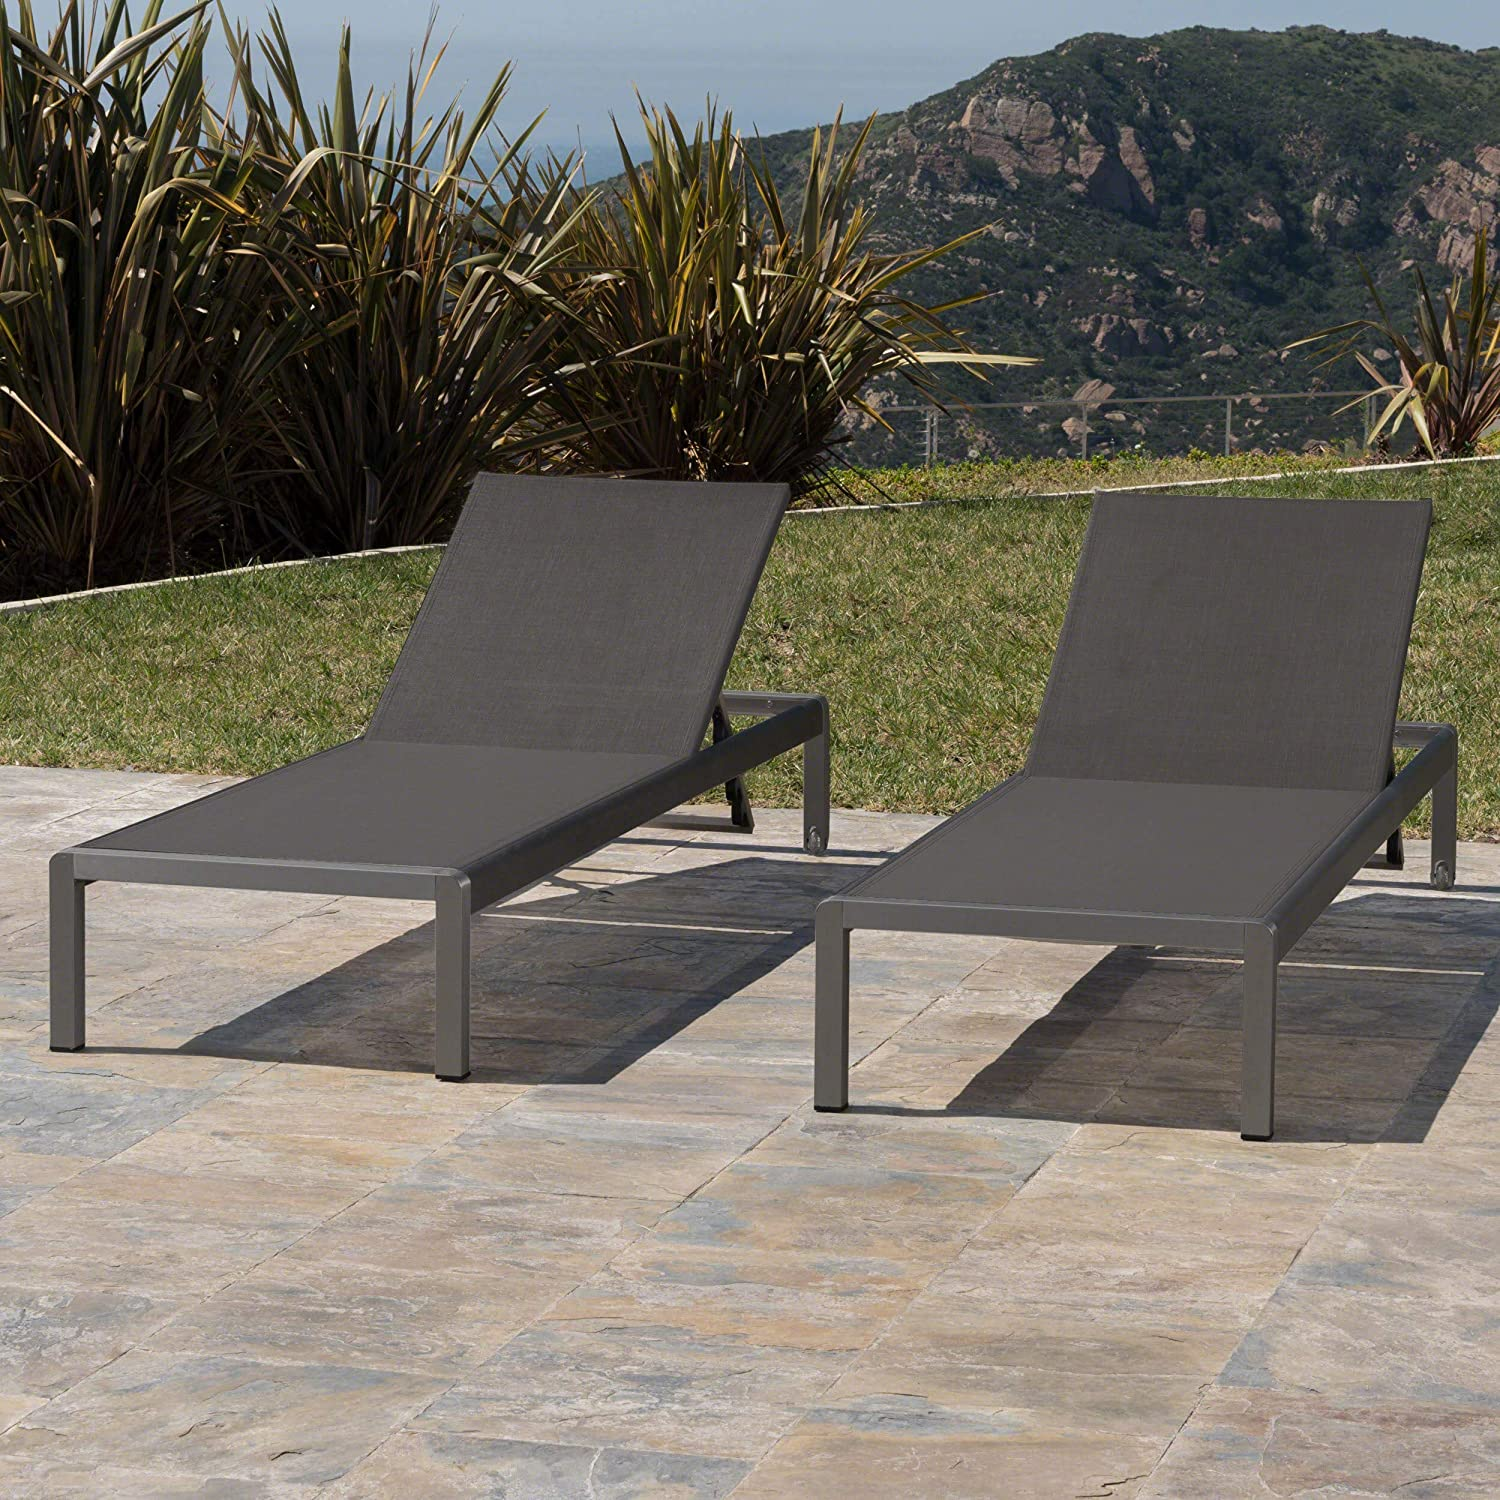 Christopher Knight Home Crested Bay Patio Furniture, Outdoor Grey Aluminum Chaise Lounge with Dark Grey Mesh Seat (Set of 2)